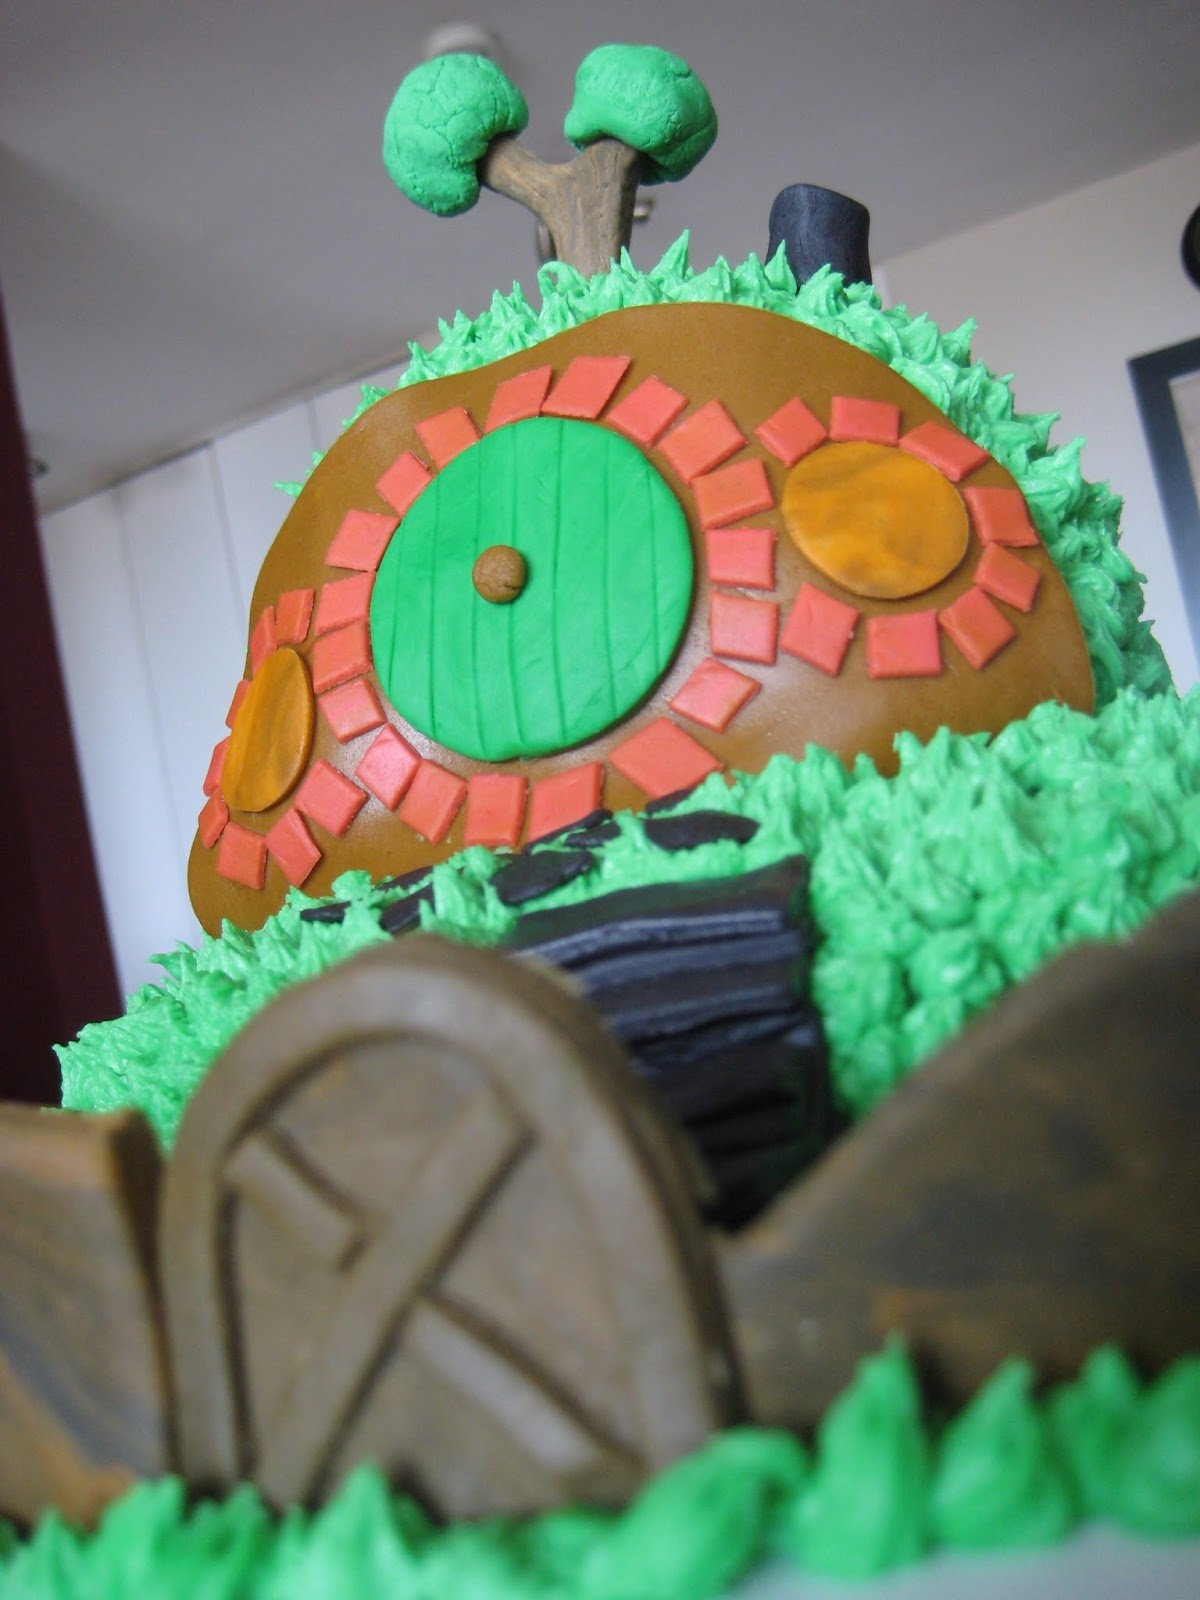 Cake Decorating Ideas Without Fondant : Becky and the Beanstalk: Fondant Decorating Time!